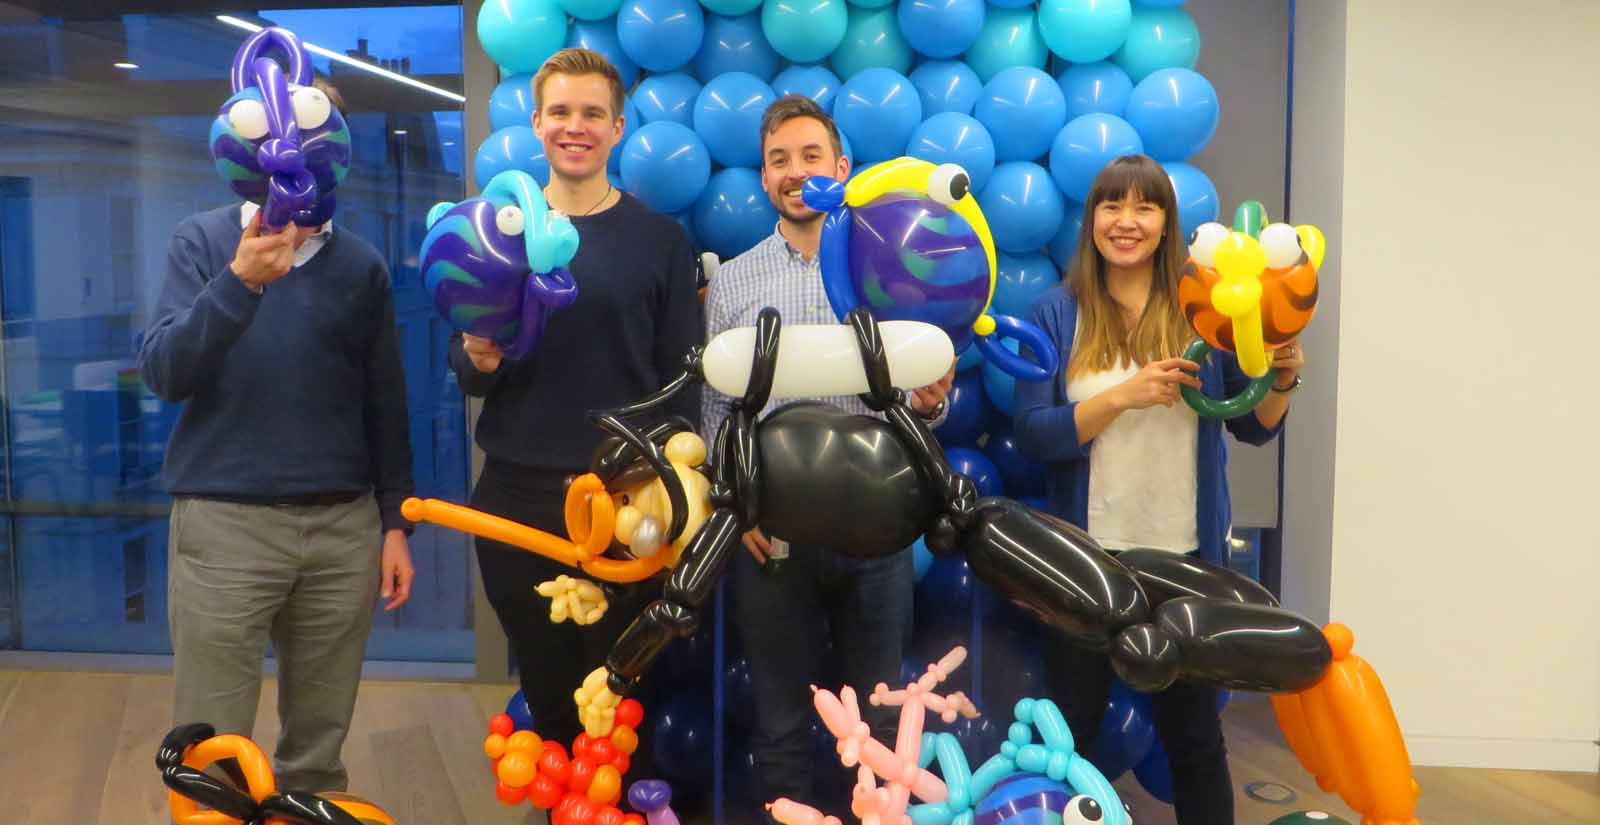 Under the sea balloon workshop